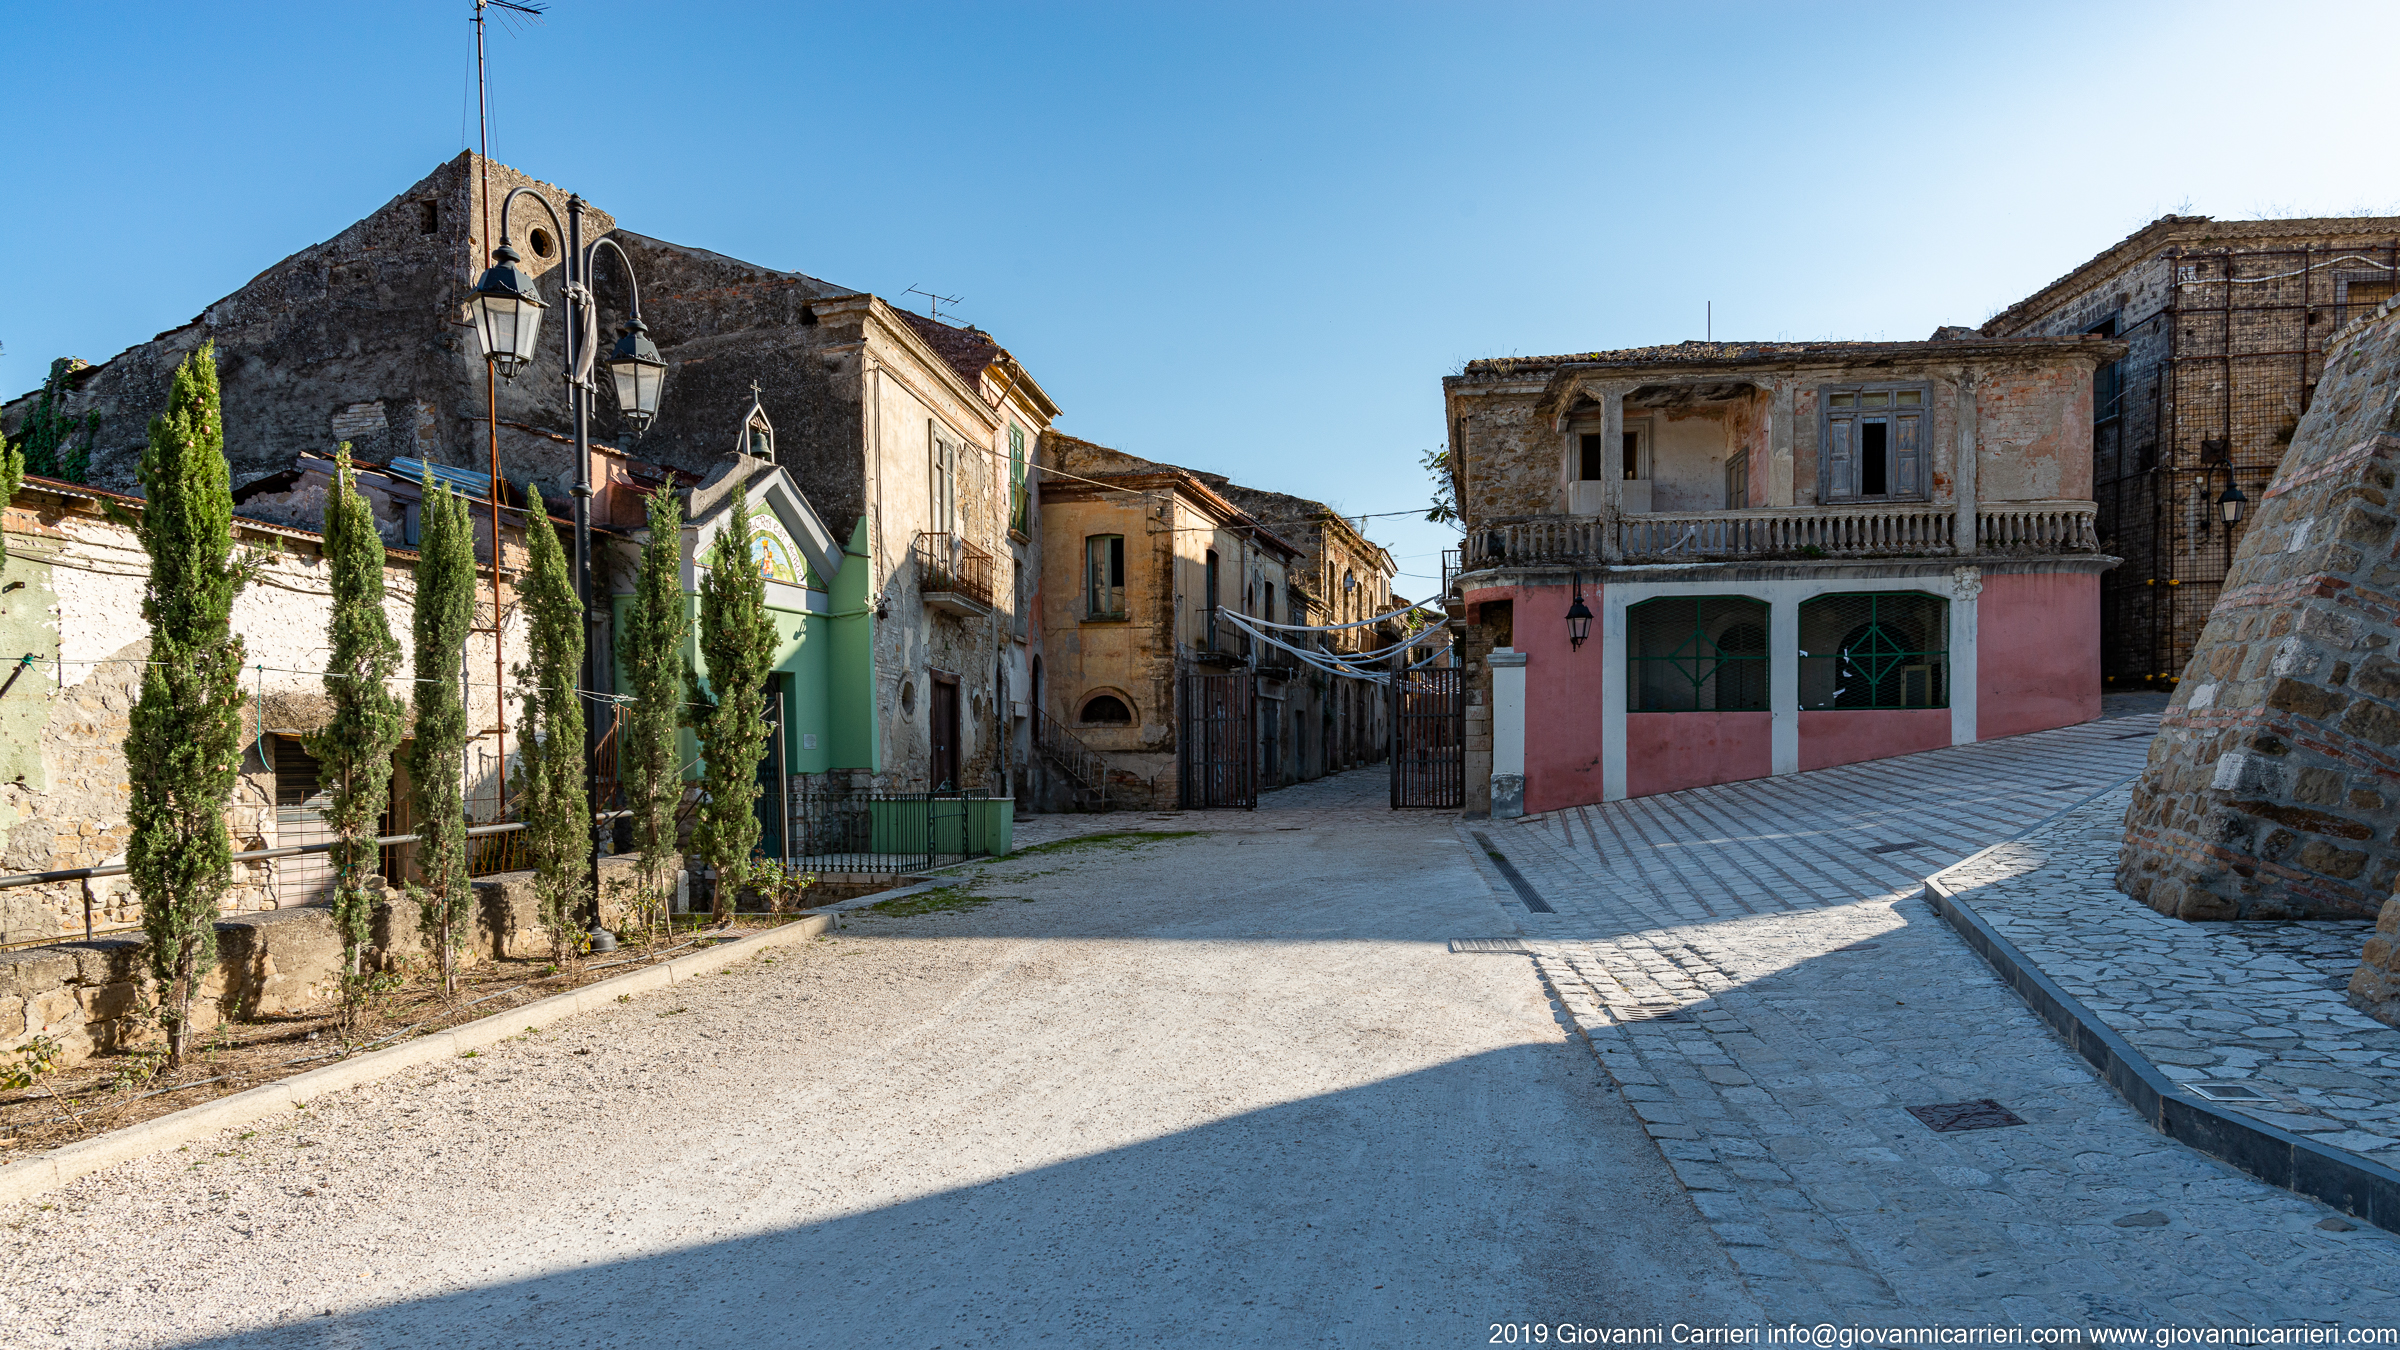 Photographs of Old Apice